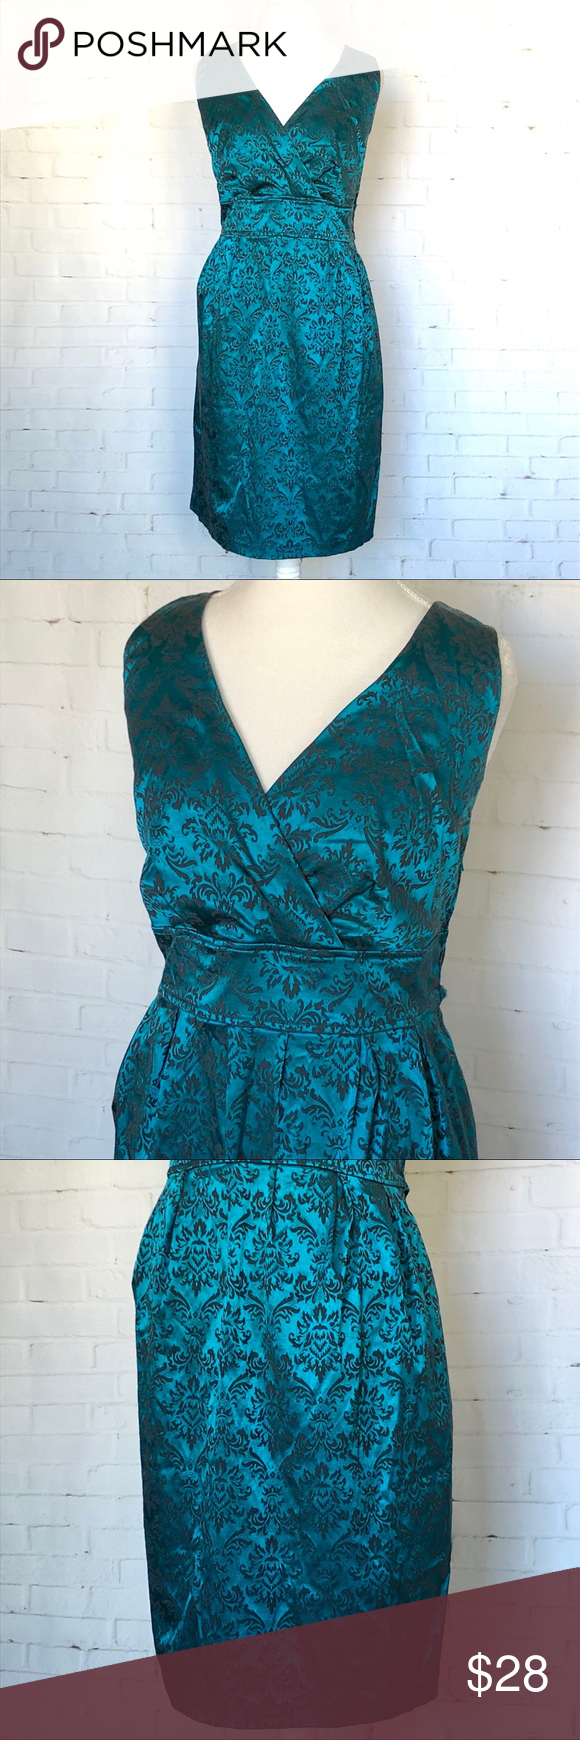 Torrid Jewel tone Damask Print Dress SZ 20 | Torrid, Jewel tones and ...